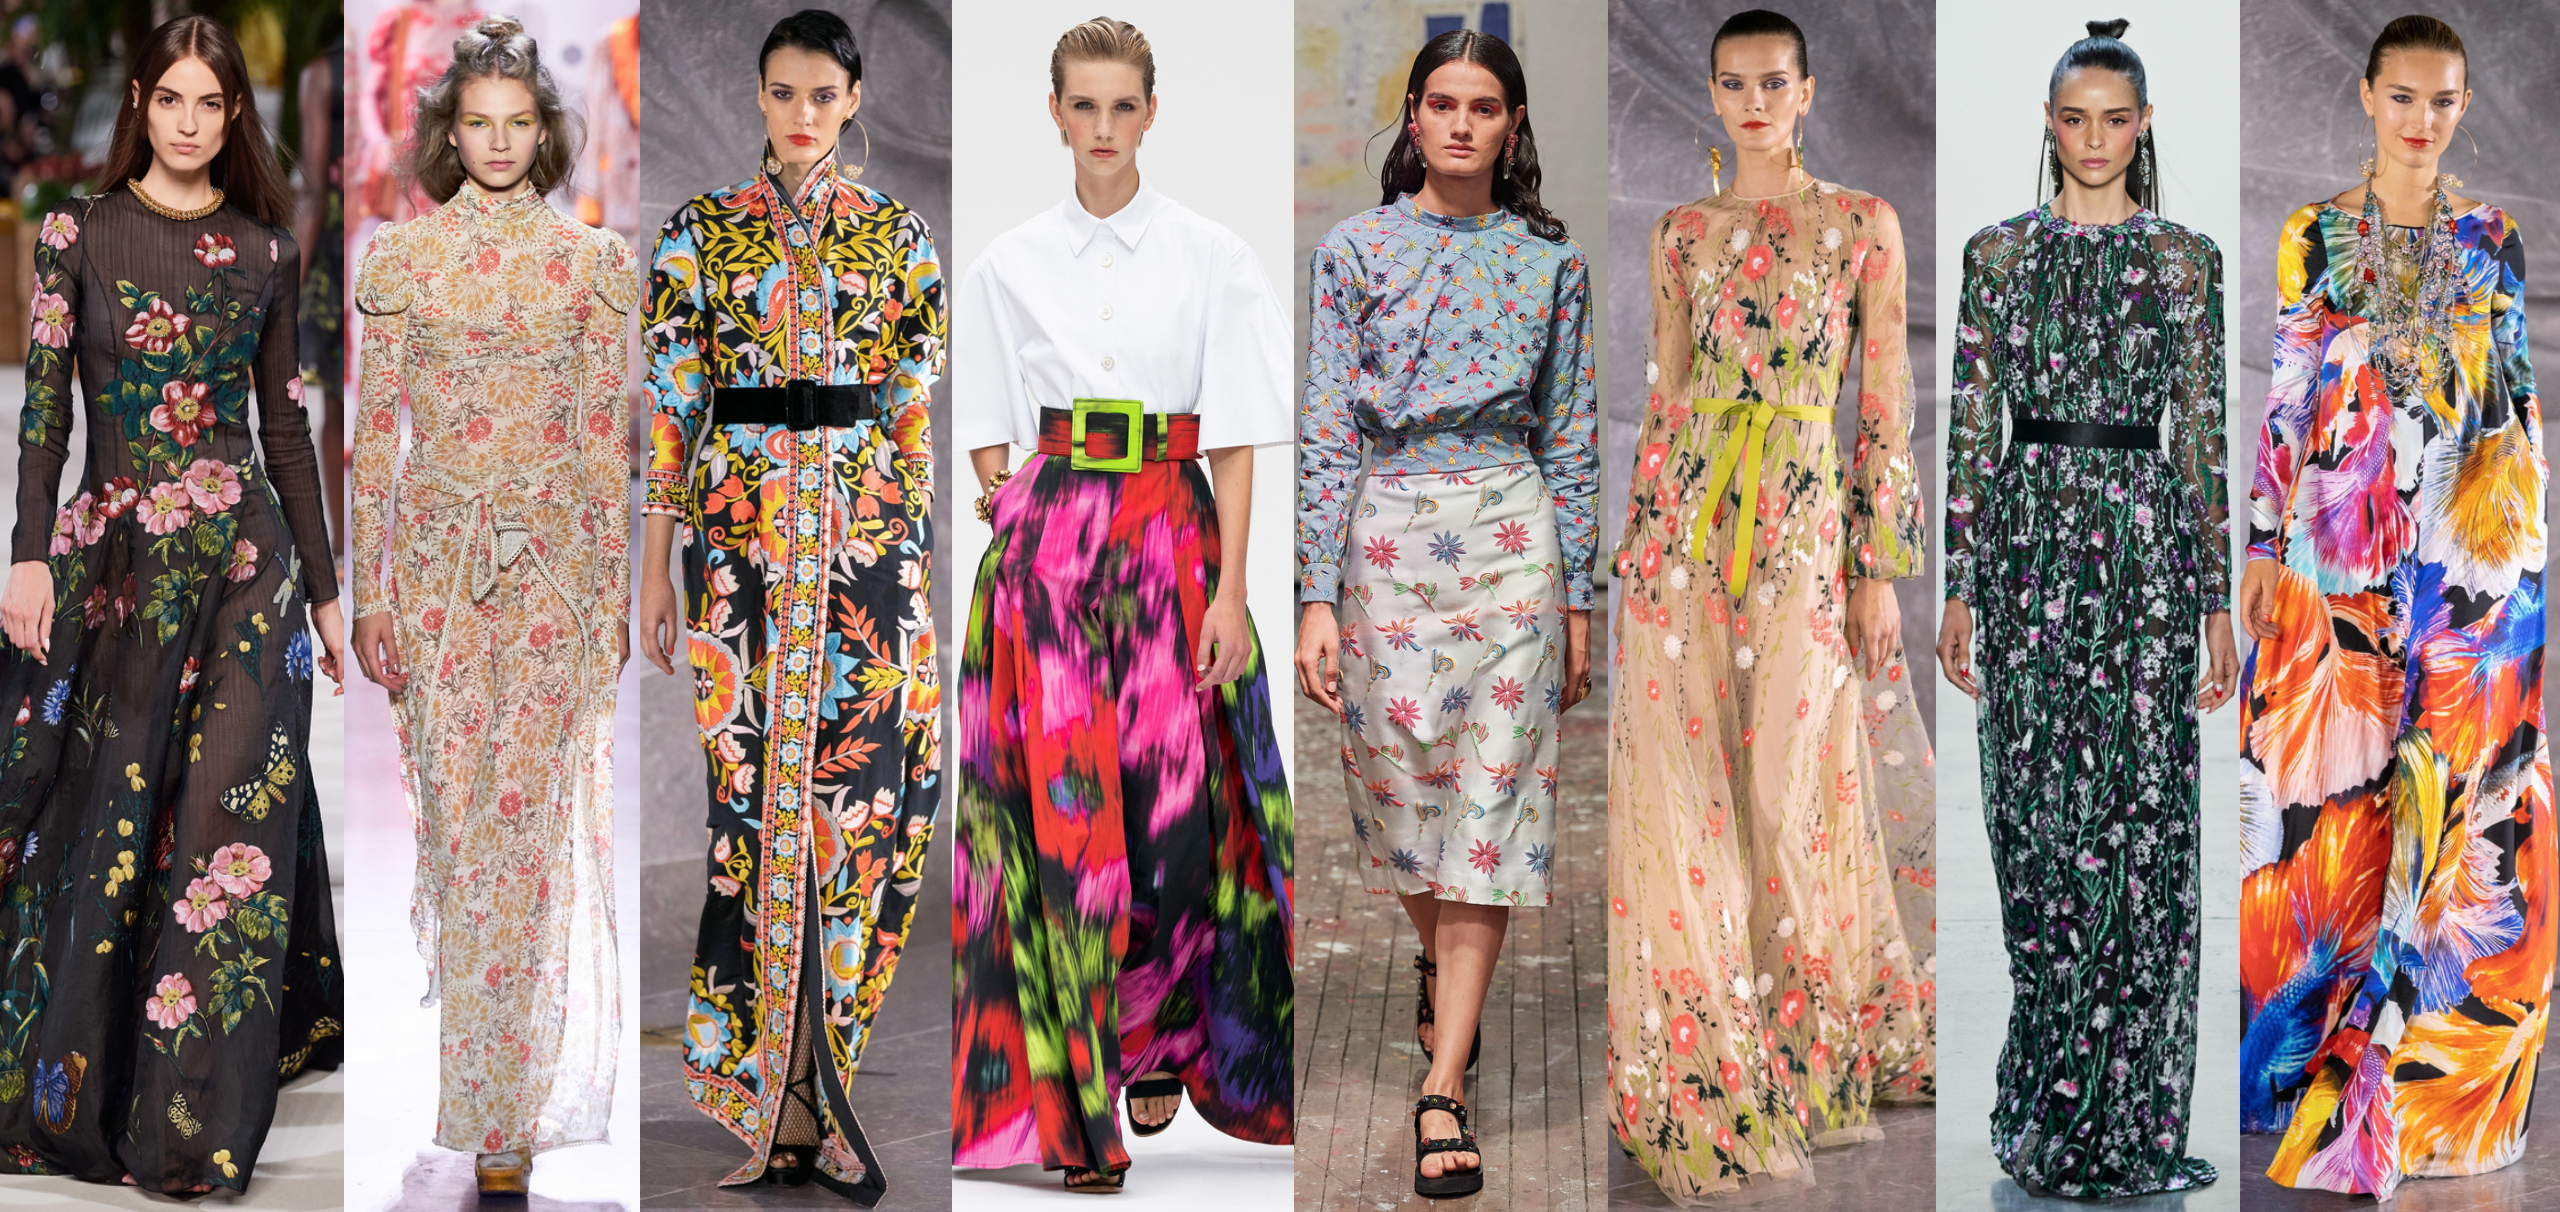 2020 Spring Trends.The Top Ten Modest Trends From Spring 2020 Fashion Week